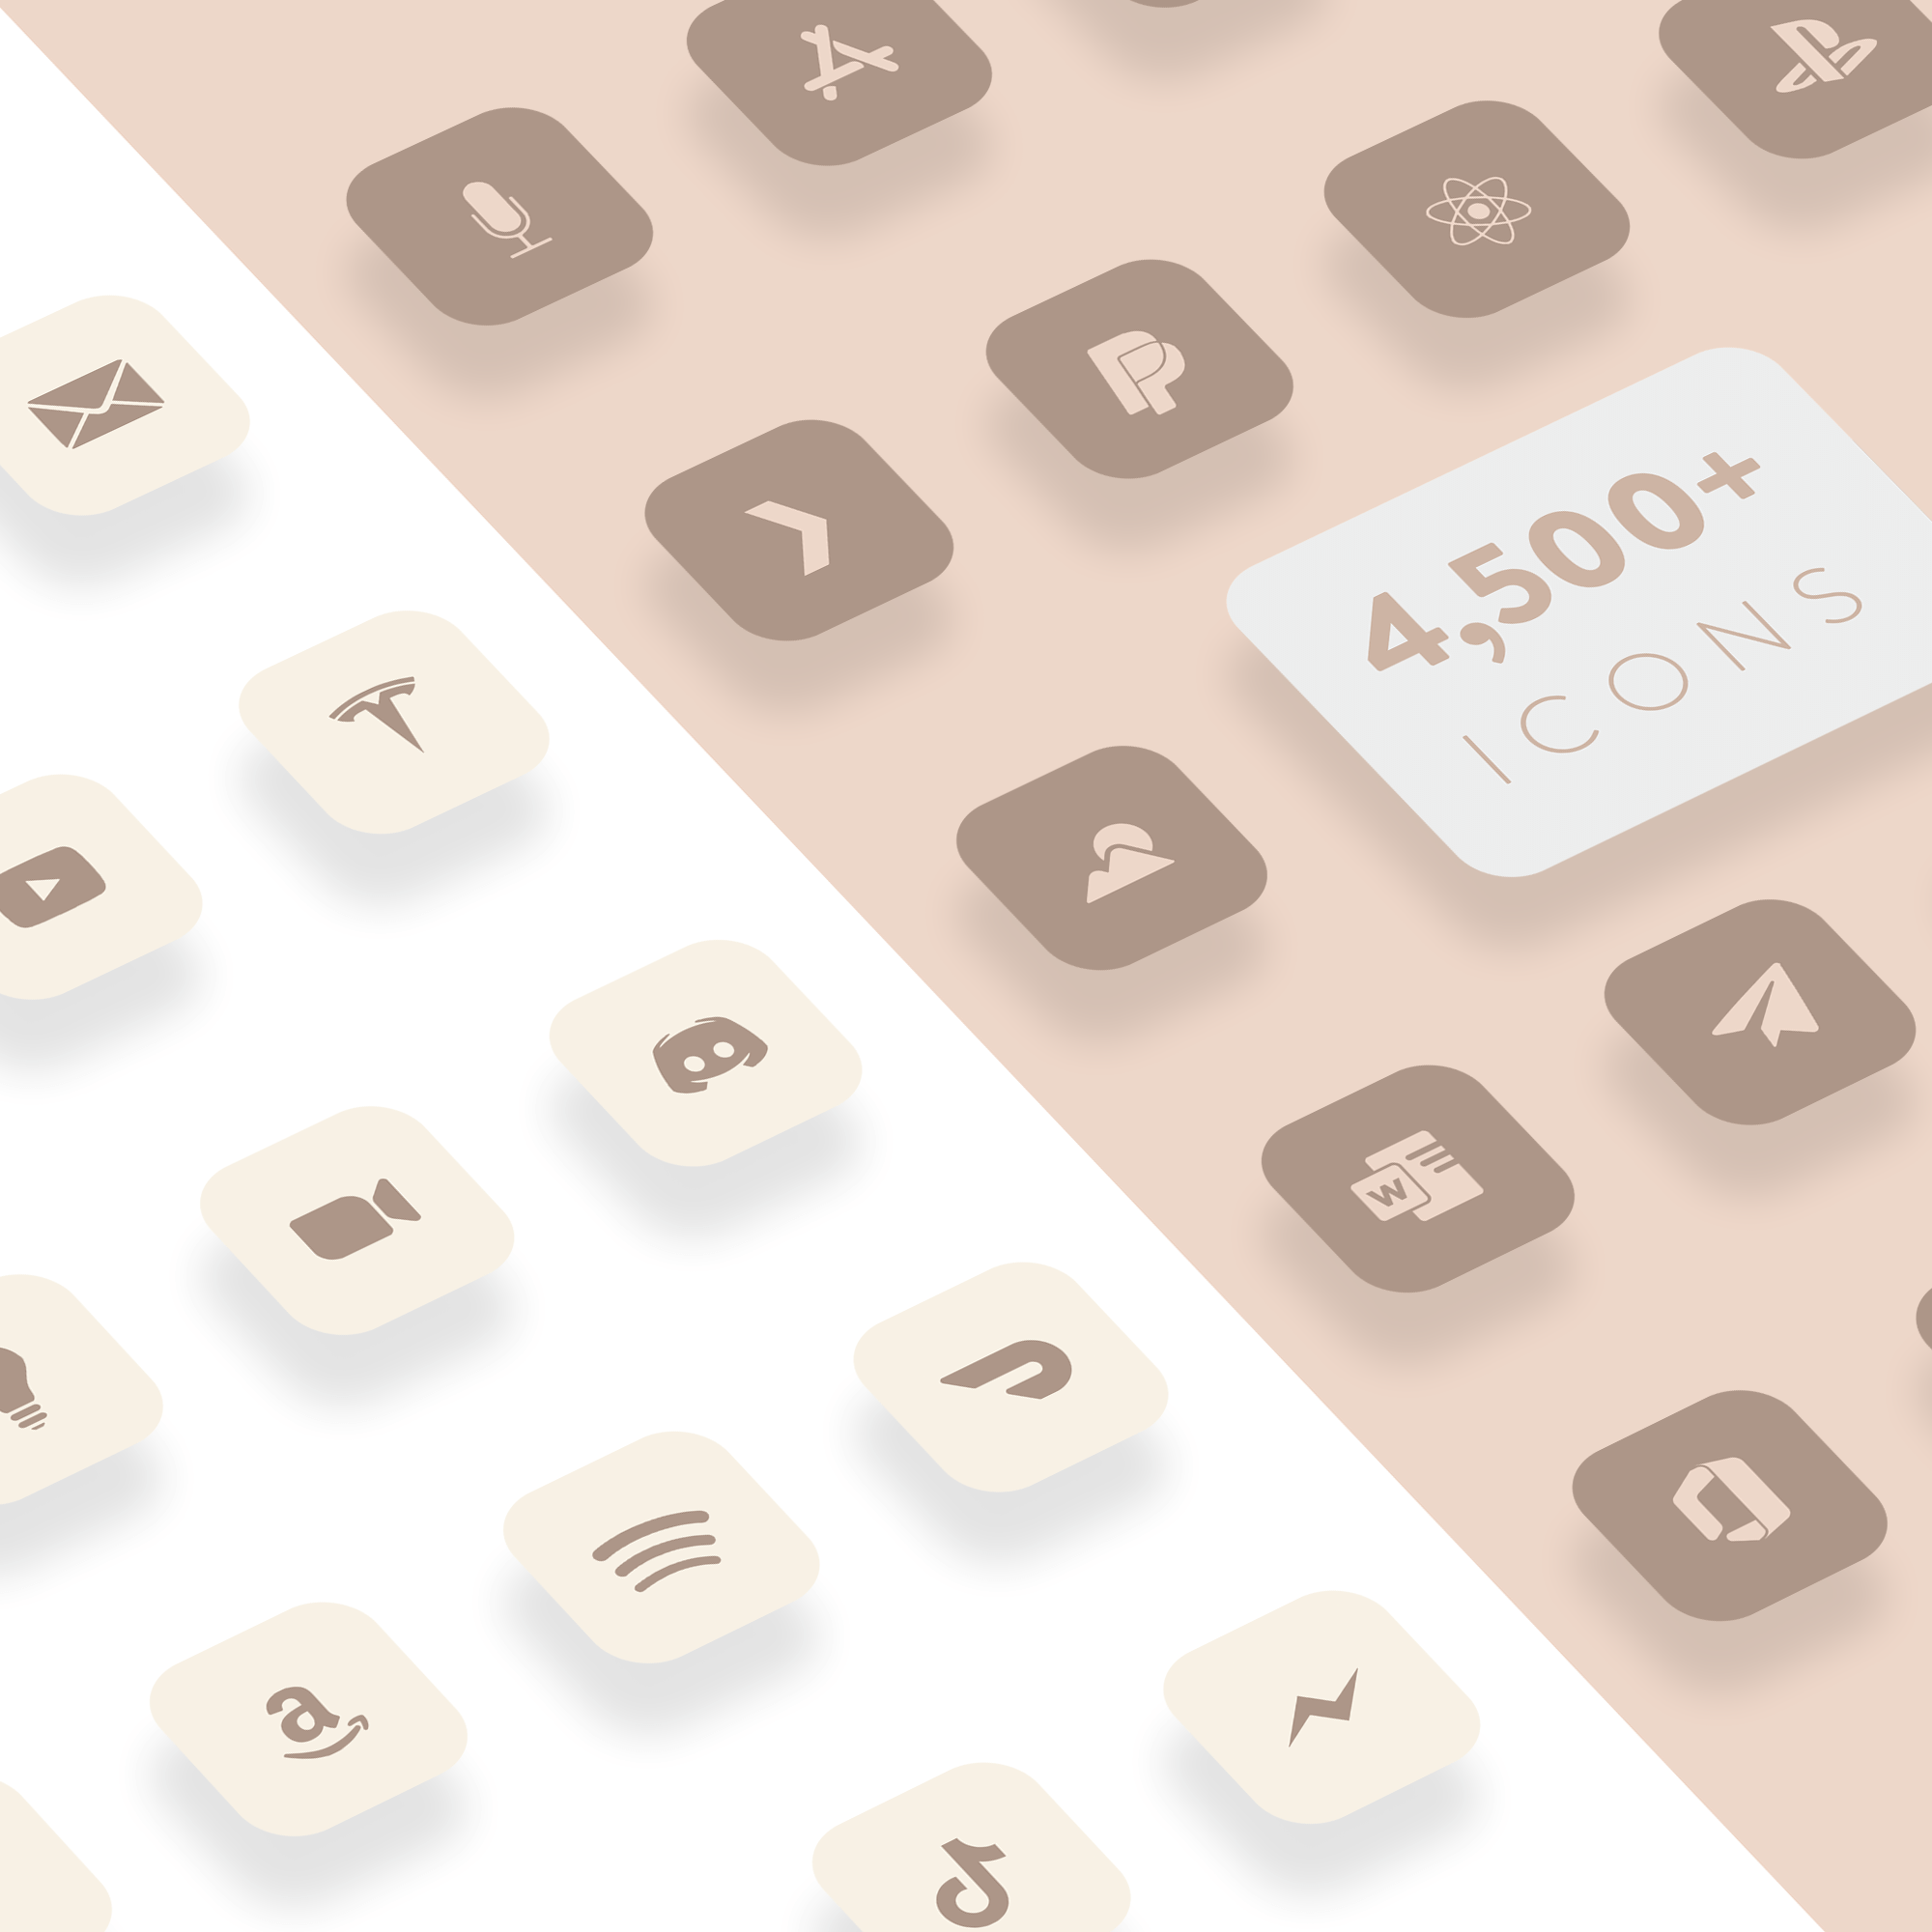 Glam - Neutral Matte iOS 14 Icons for iPhone - Nate Wren ...